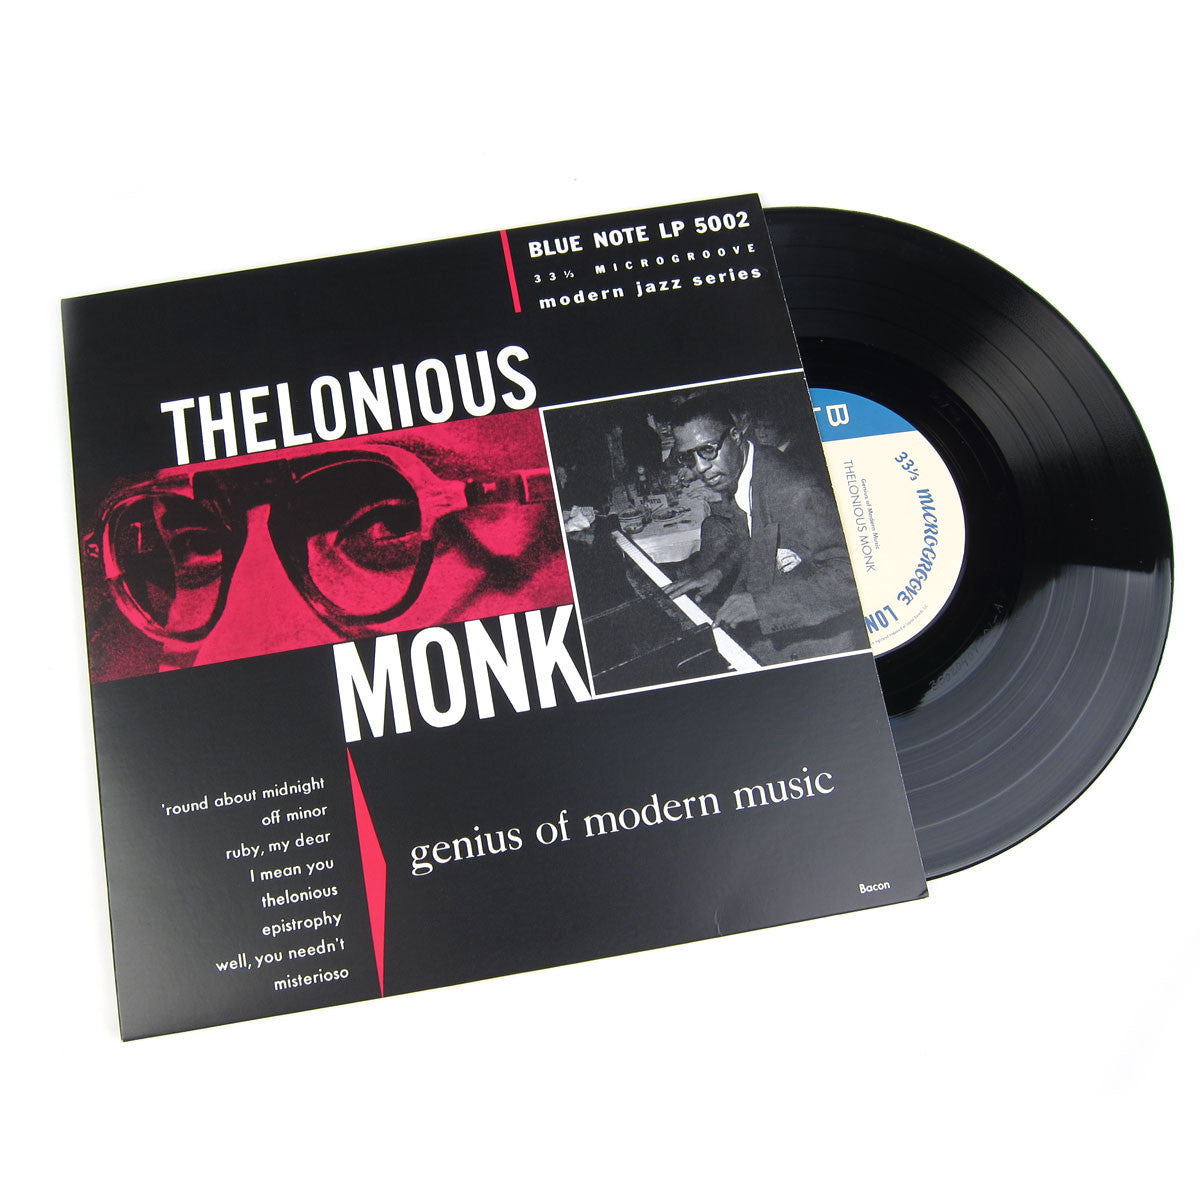 Thelonious Monk: Genius Of Modern Music Vol.1 (Mono) Vinyl 10""